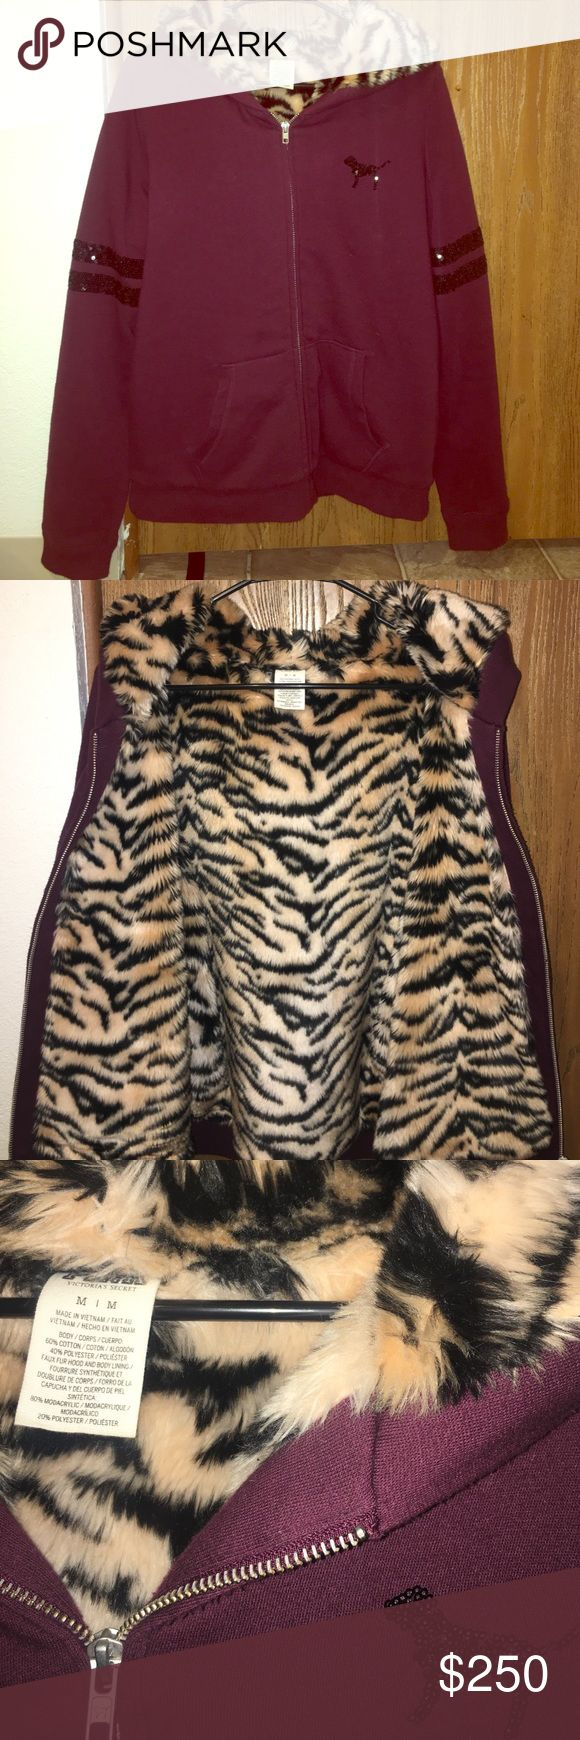 Victoria's Secret pink rare tiger fur coat I'm debating on selling this.... like new, worn up to 2-3 times max!! This is limited edition and goes for a lot. Just seeing if anyone would be interested. I'd maybe trade but it would have to be for a few items. This is the price as of now. This sells for A LOT! Trading price is $200. PINK Victoria's Secret Sweaters